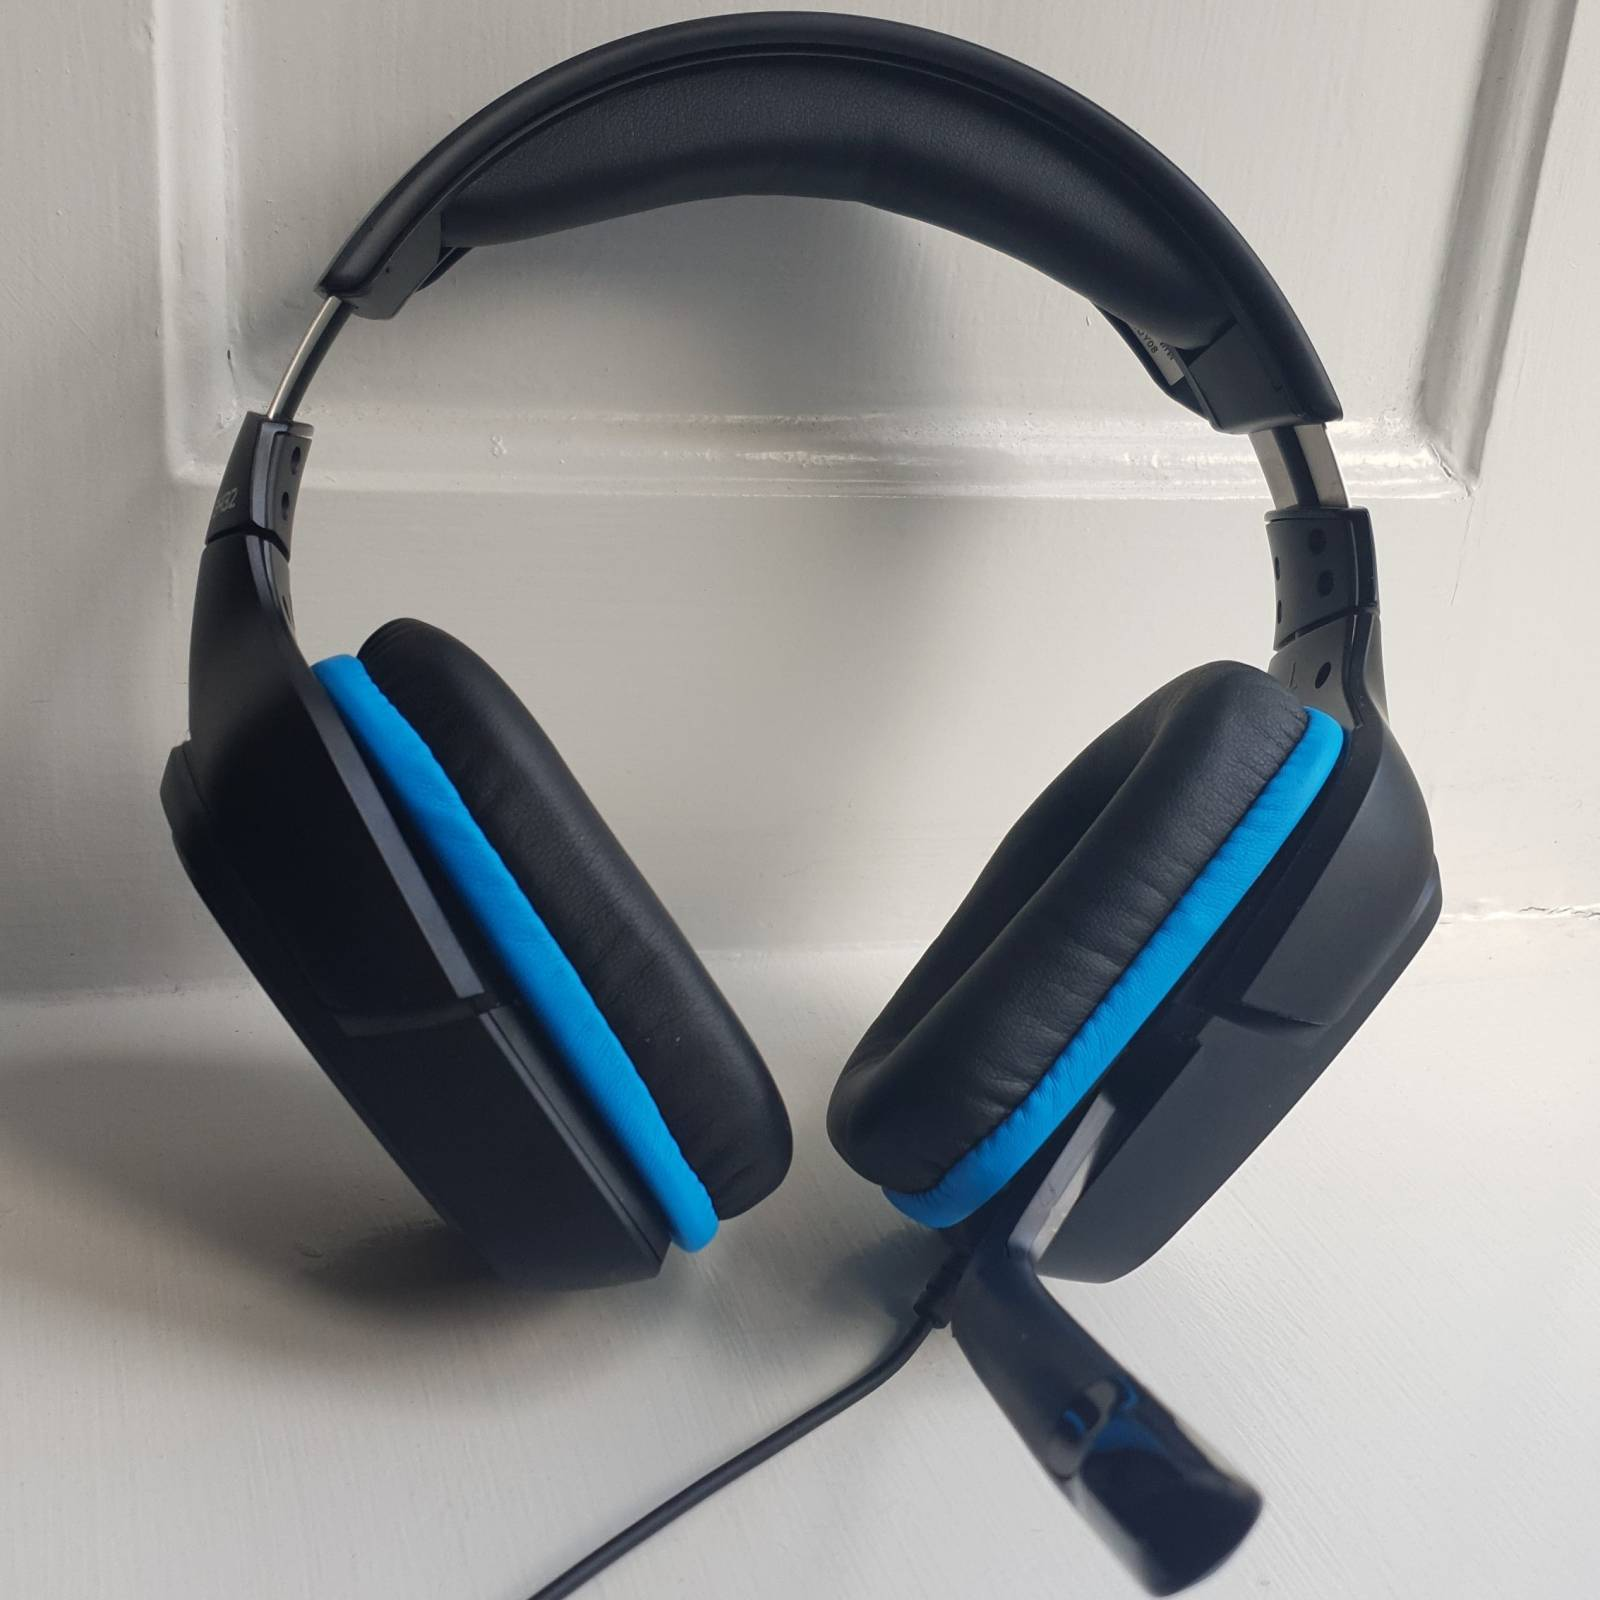 frontal image of G432 headset